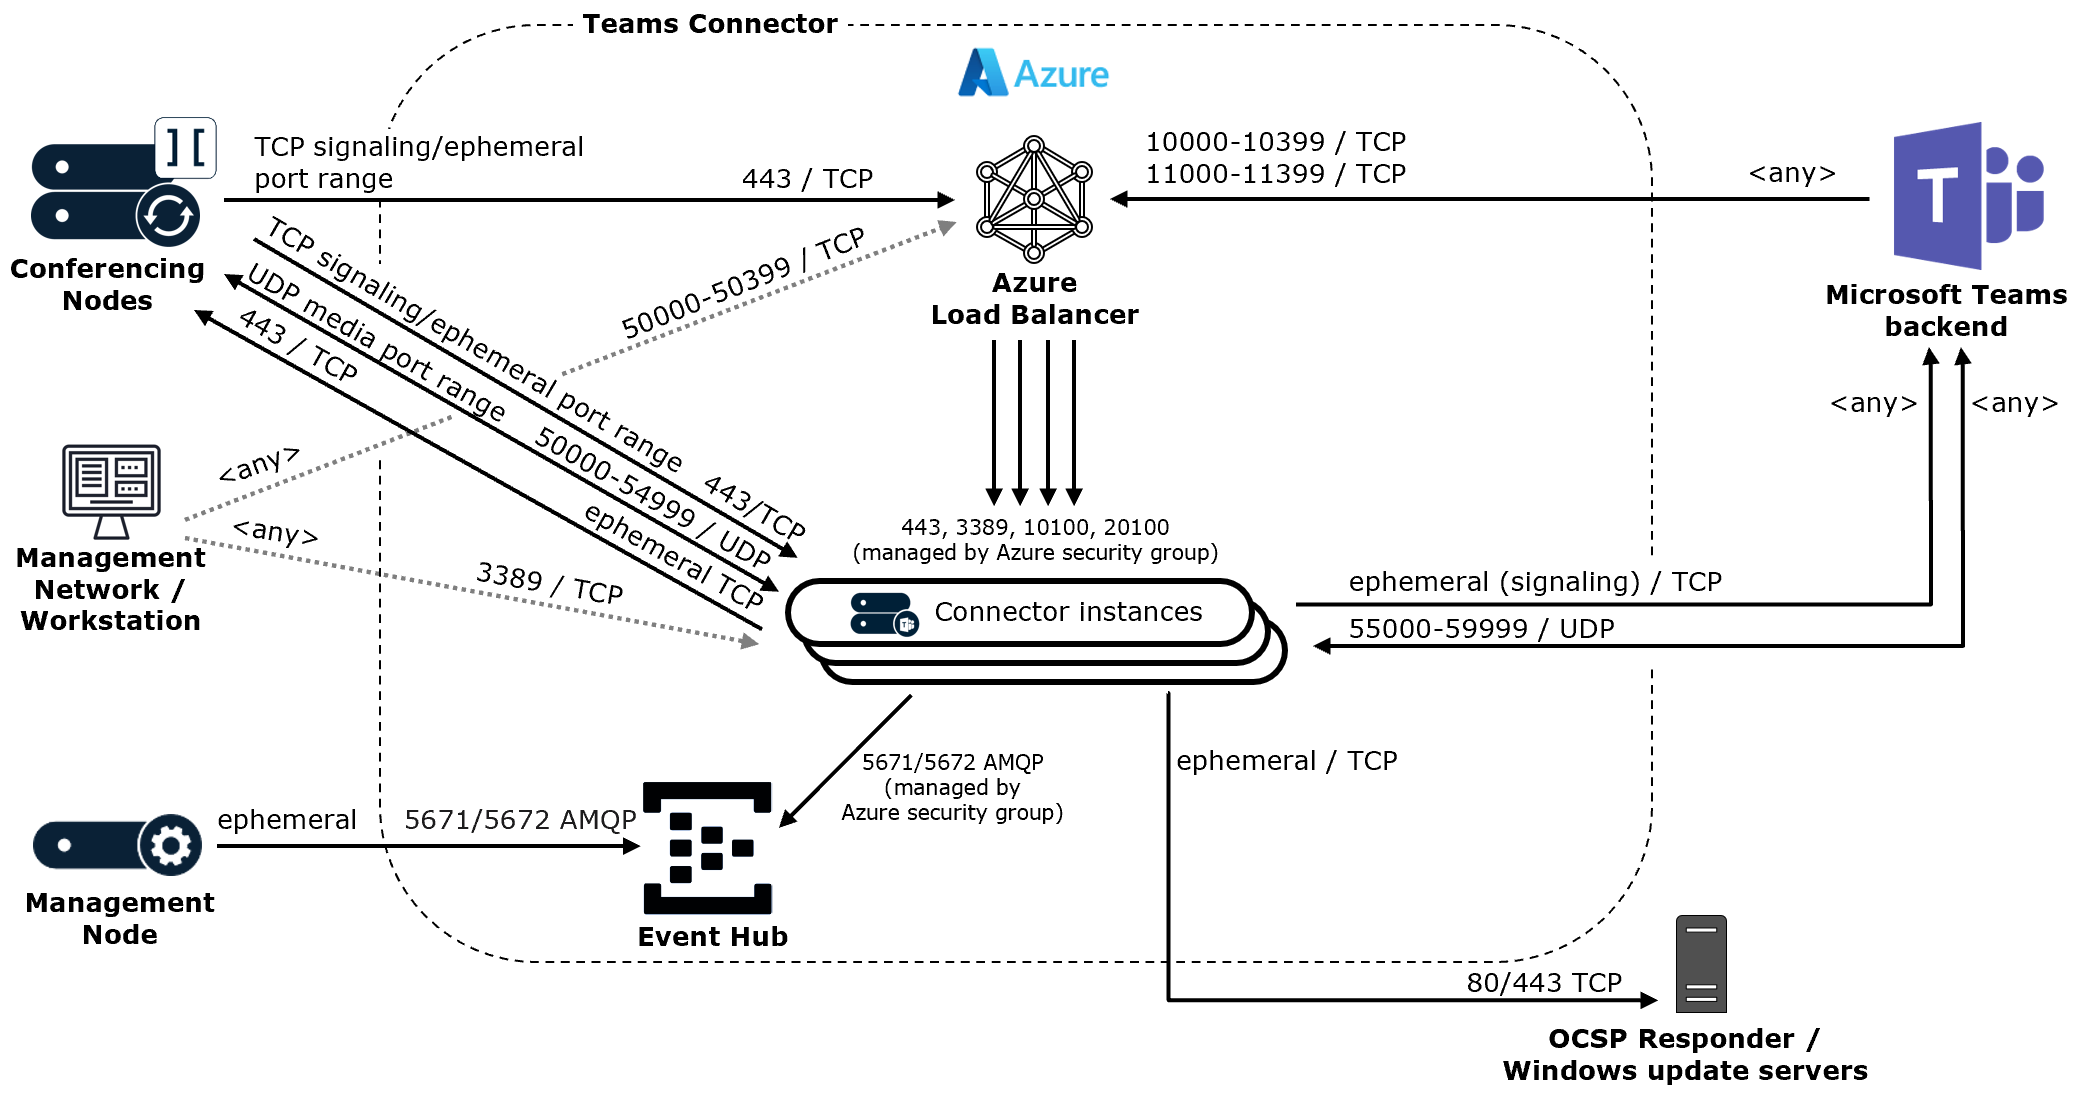 Installing and configuring the Teams Connector in Azure